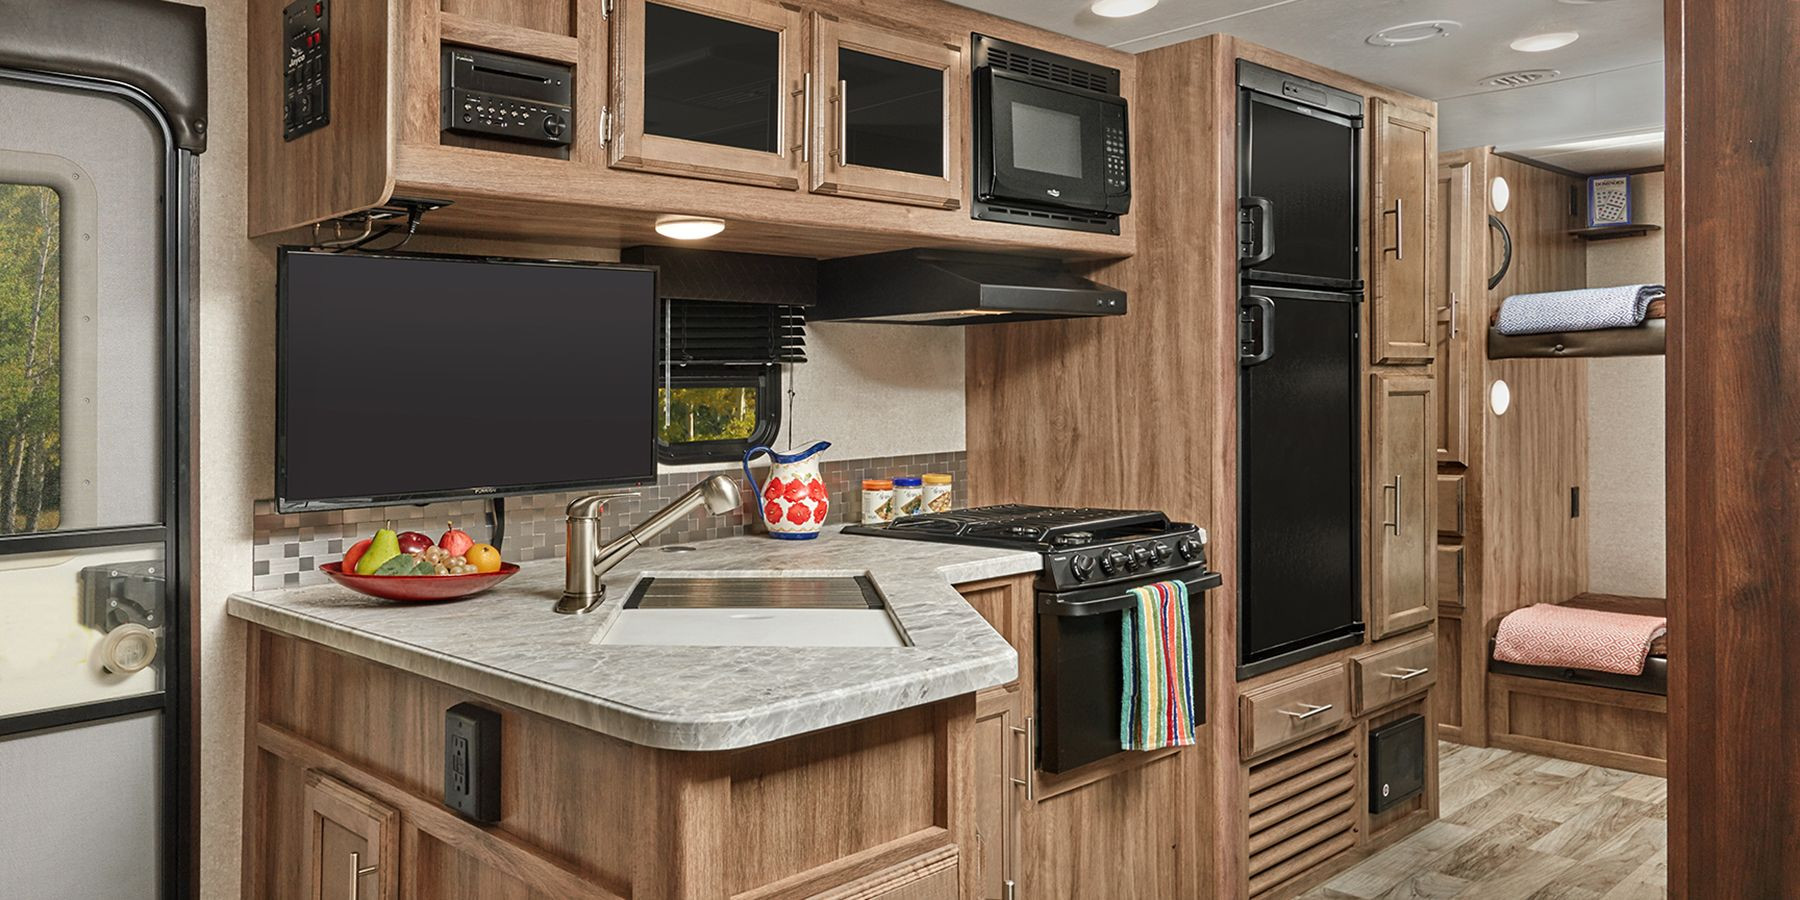 prestige hardwood flooring bend oregon of 2019 jay feather travel trailers jayco inc with a fully equipped kitchen a 6 cubic